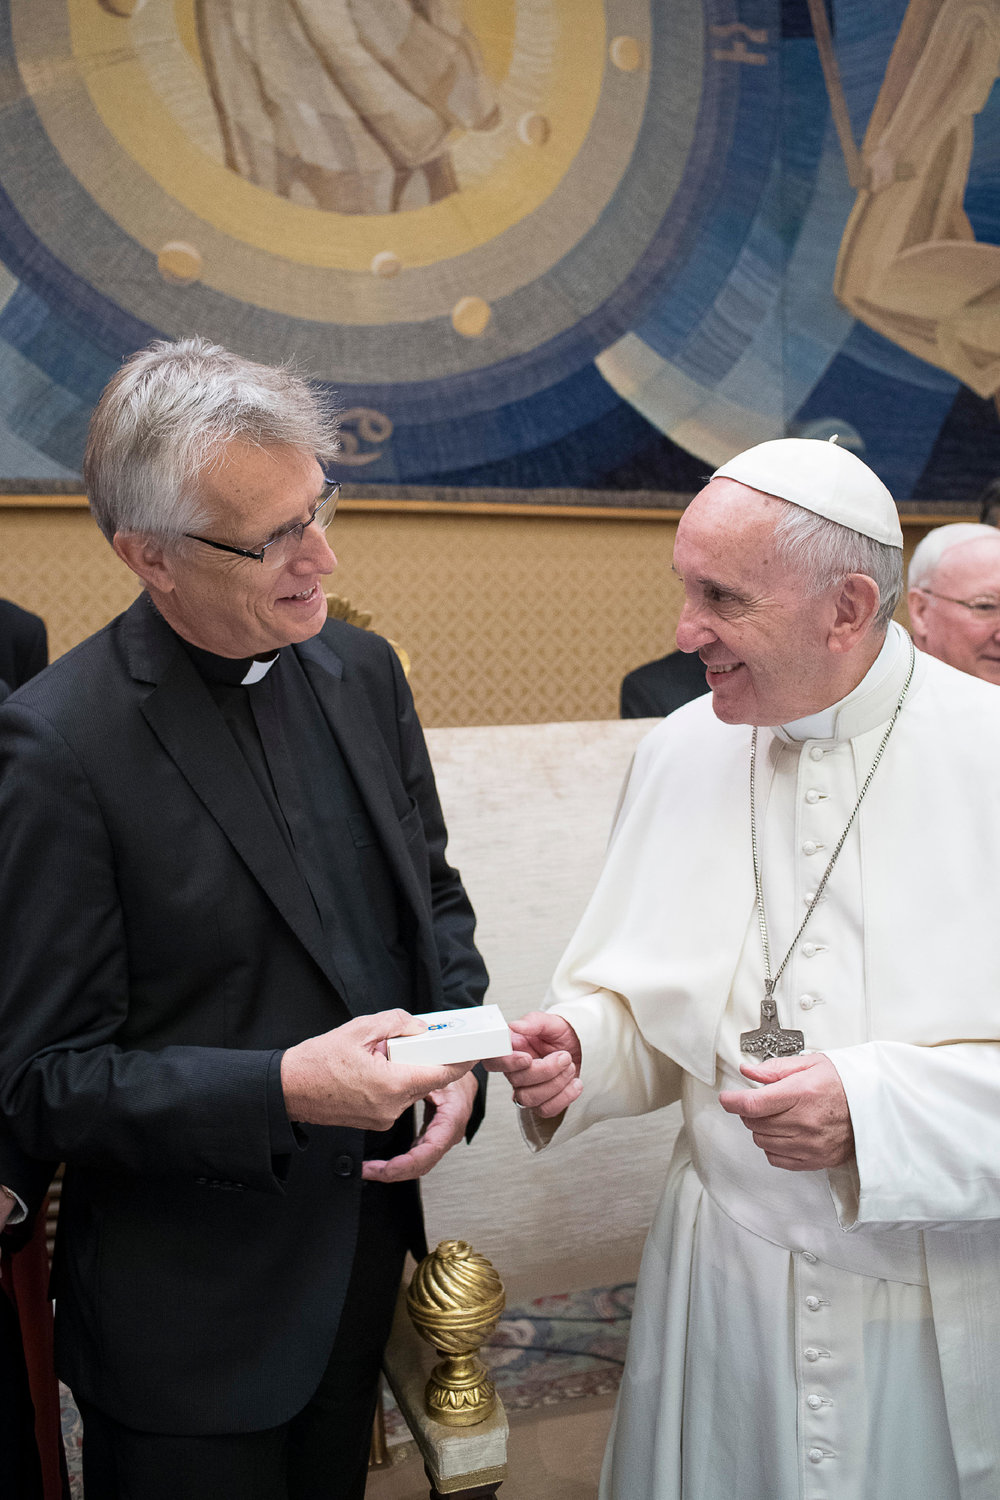 Rev. Dr Martin Junge and Pope Francis (credit: L'Osservatore Romano)